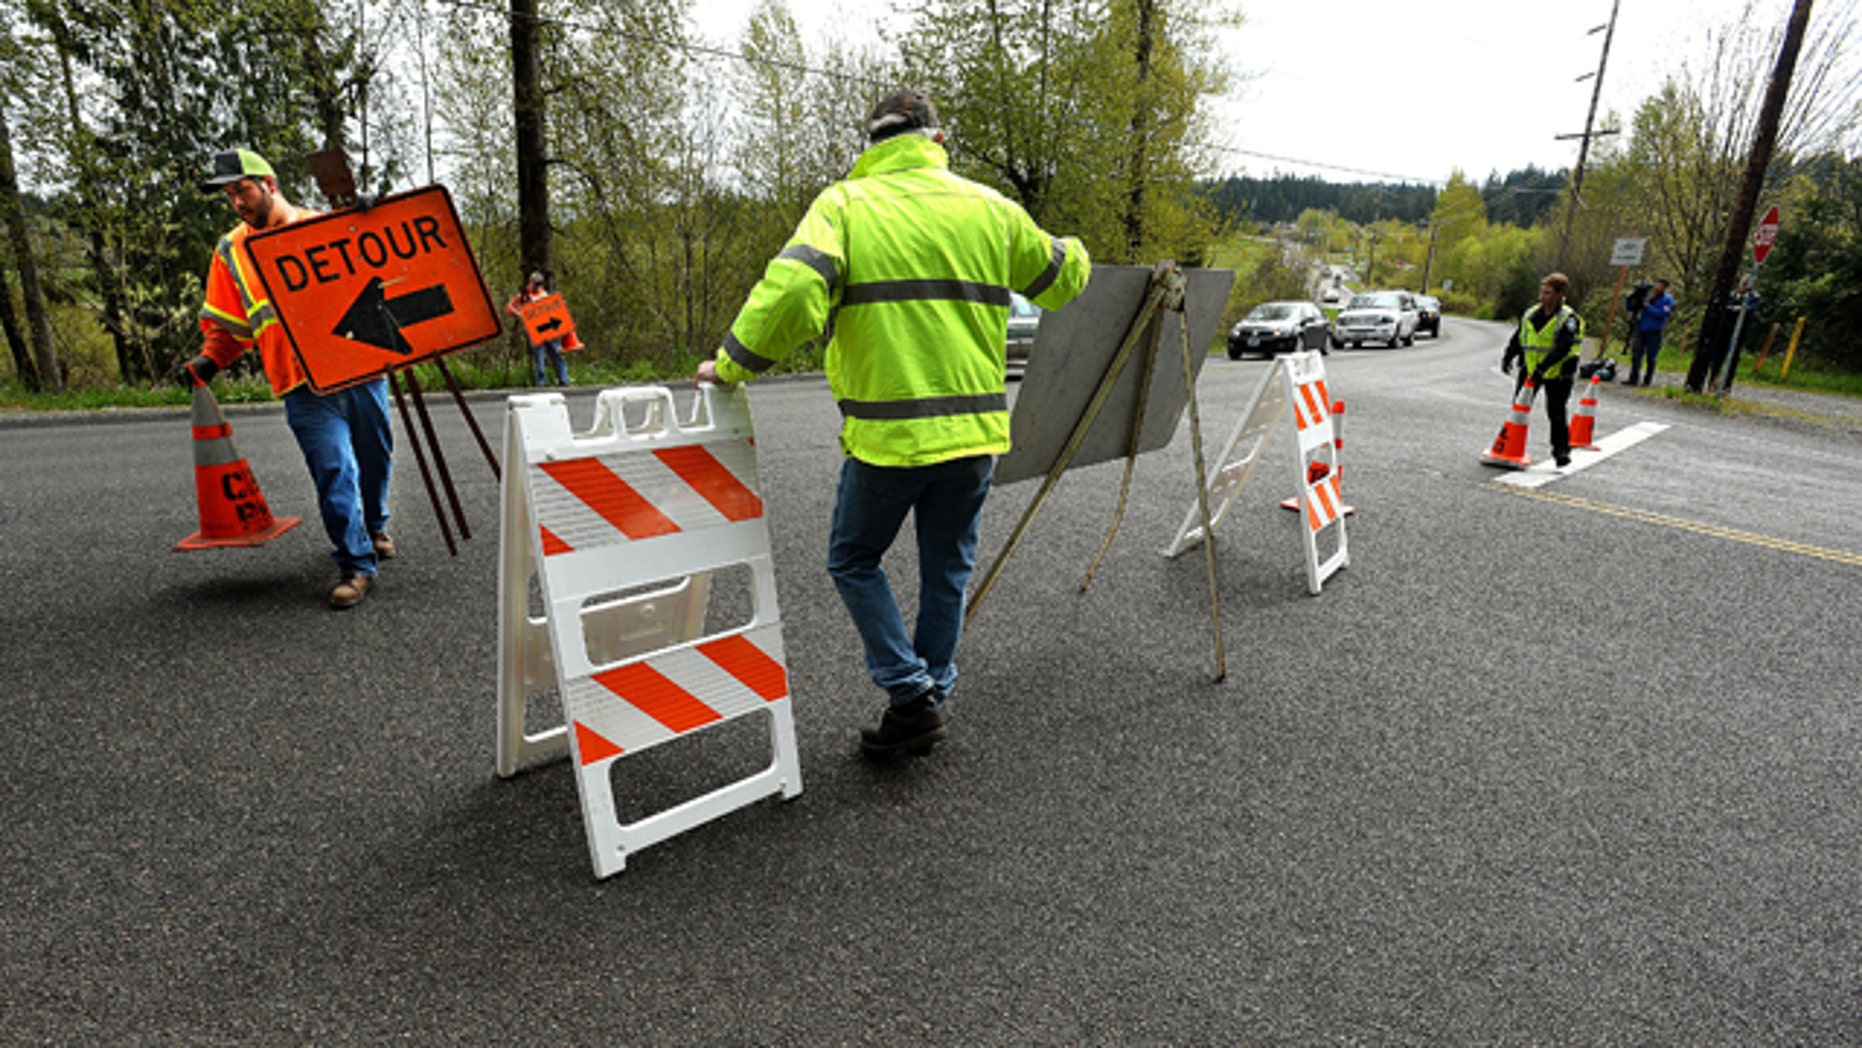 April 13, 2015: Workers with the Bonney Lake Public Works Department set up signs along Sumner-Buckley Highway to divert traffic away from Angeline Road East in Bonney Lake, Wash., after three people were killed when a piece of concrete fell from an overpass onto a pickup truck in the roadway below. (David Montesino/The News Tribune via AP)